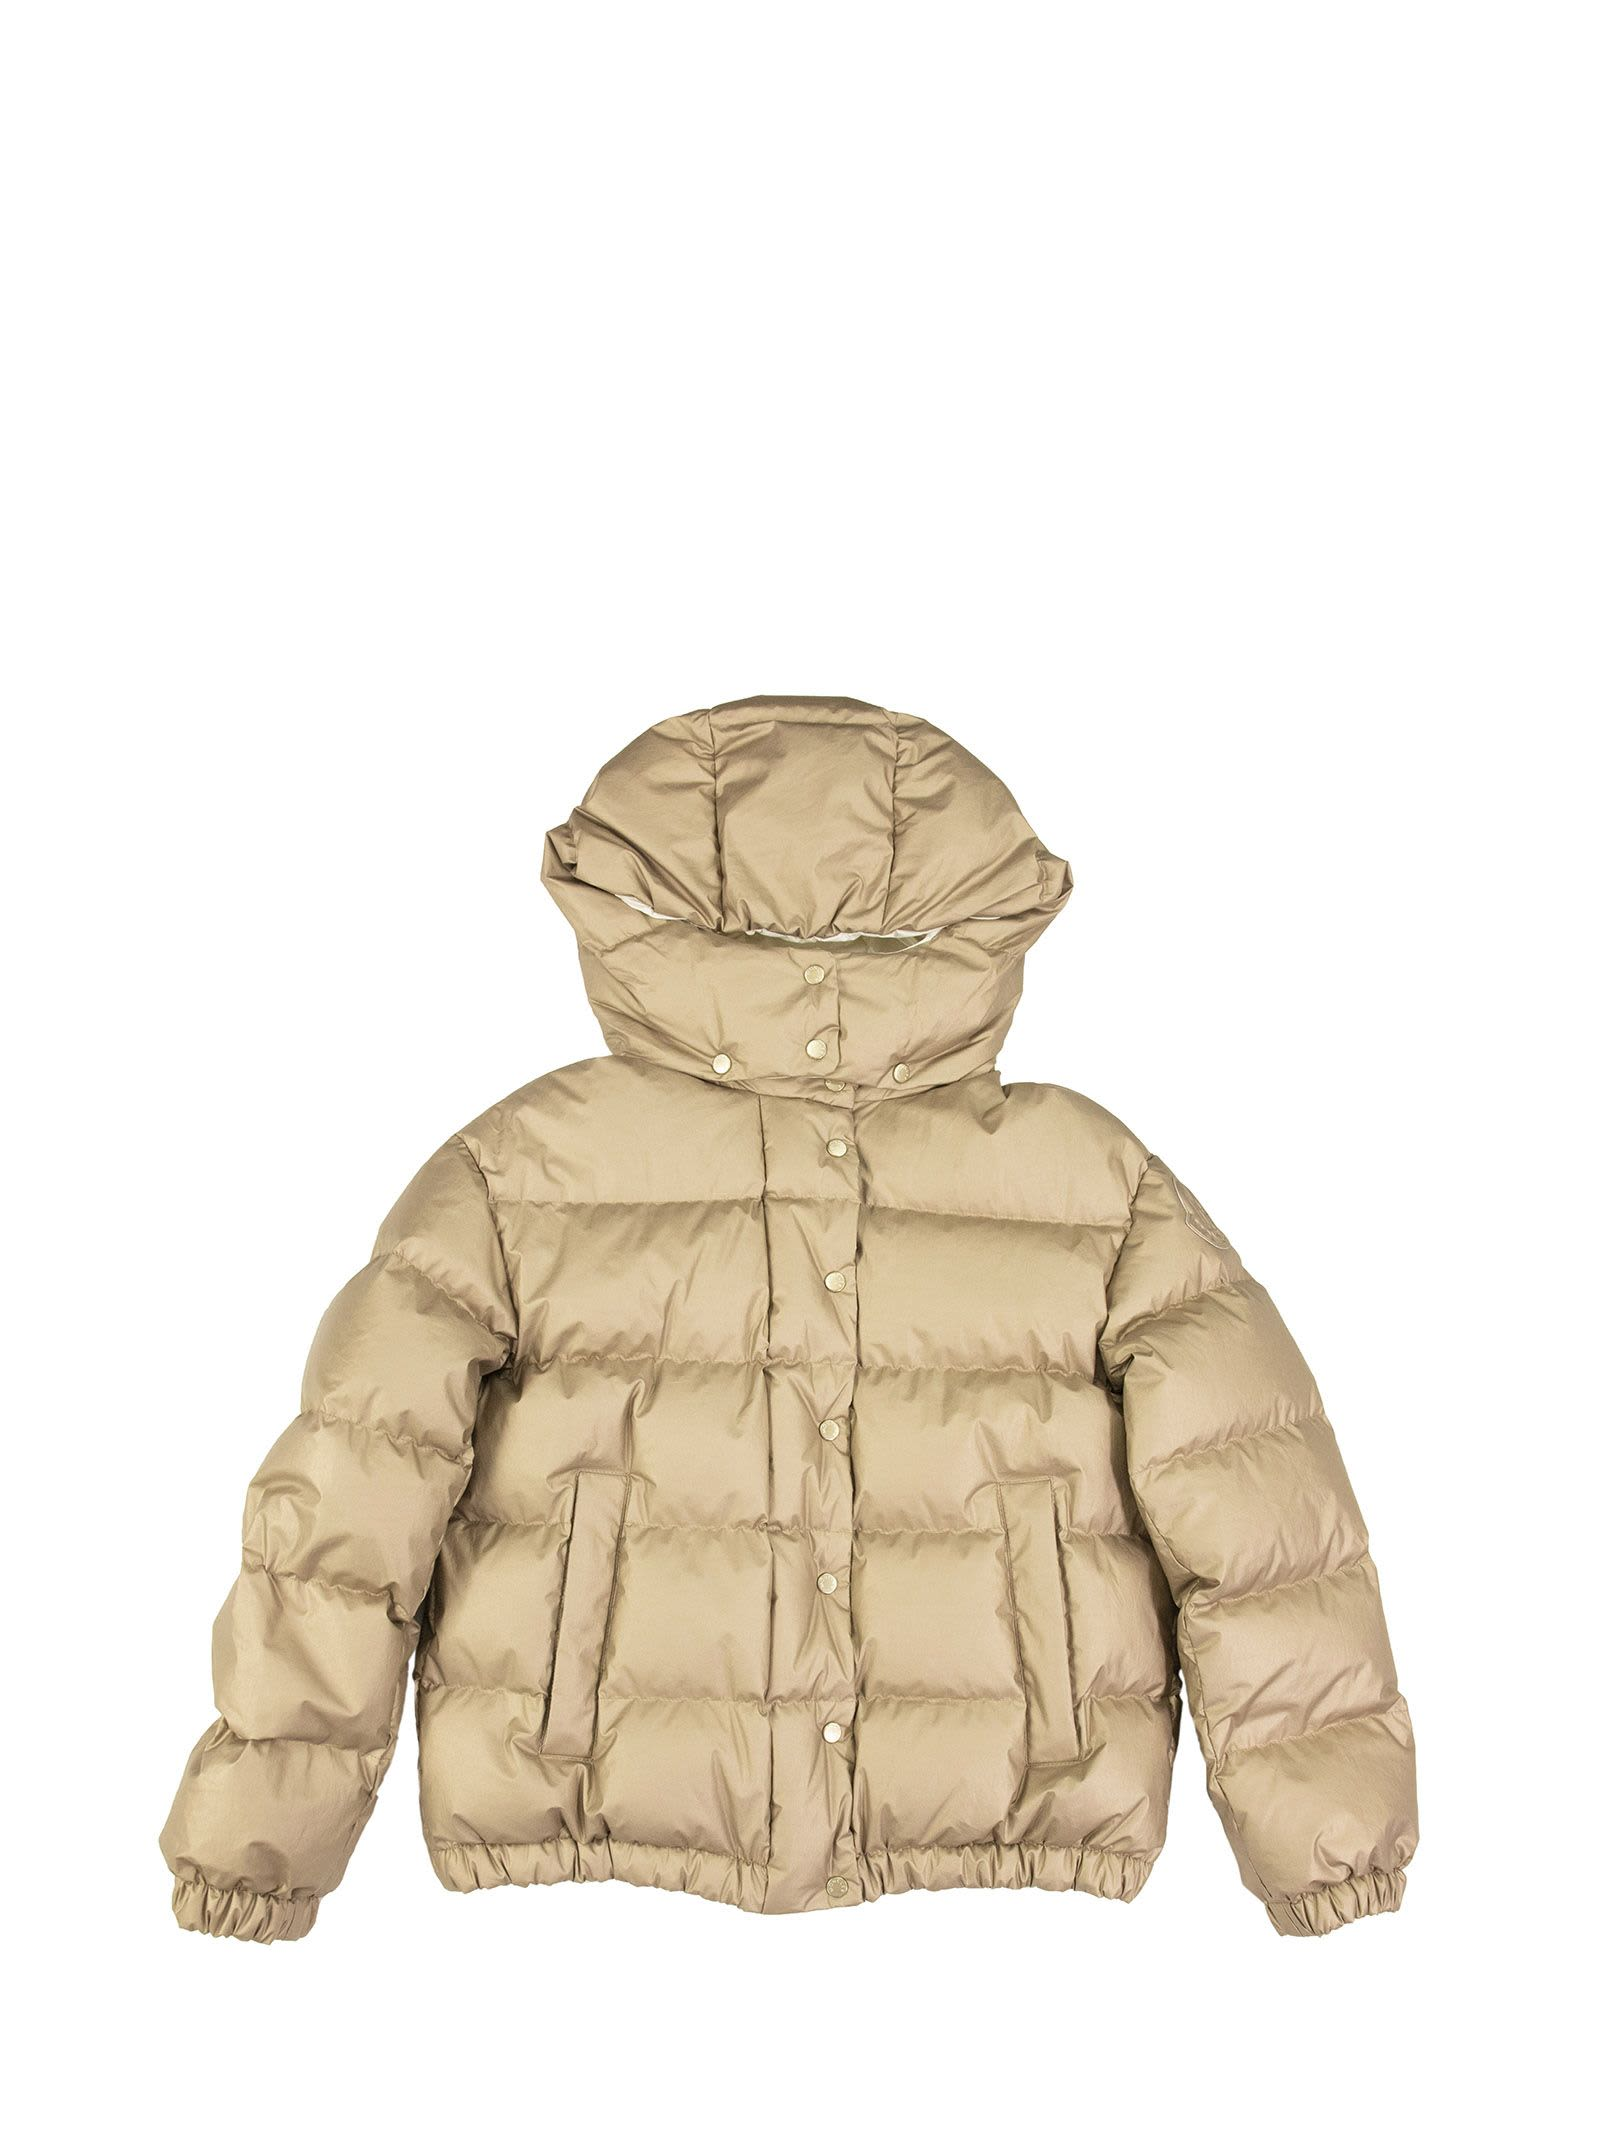 MONCLER DAOS DOWN JACKET WITH HOOD